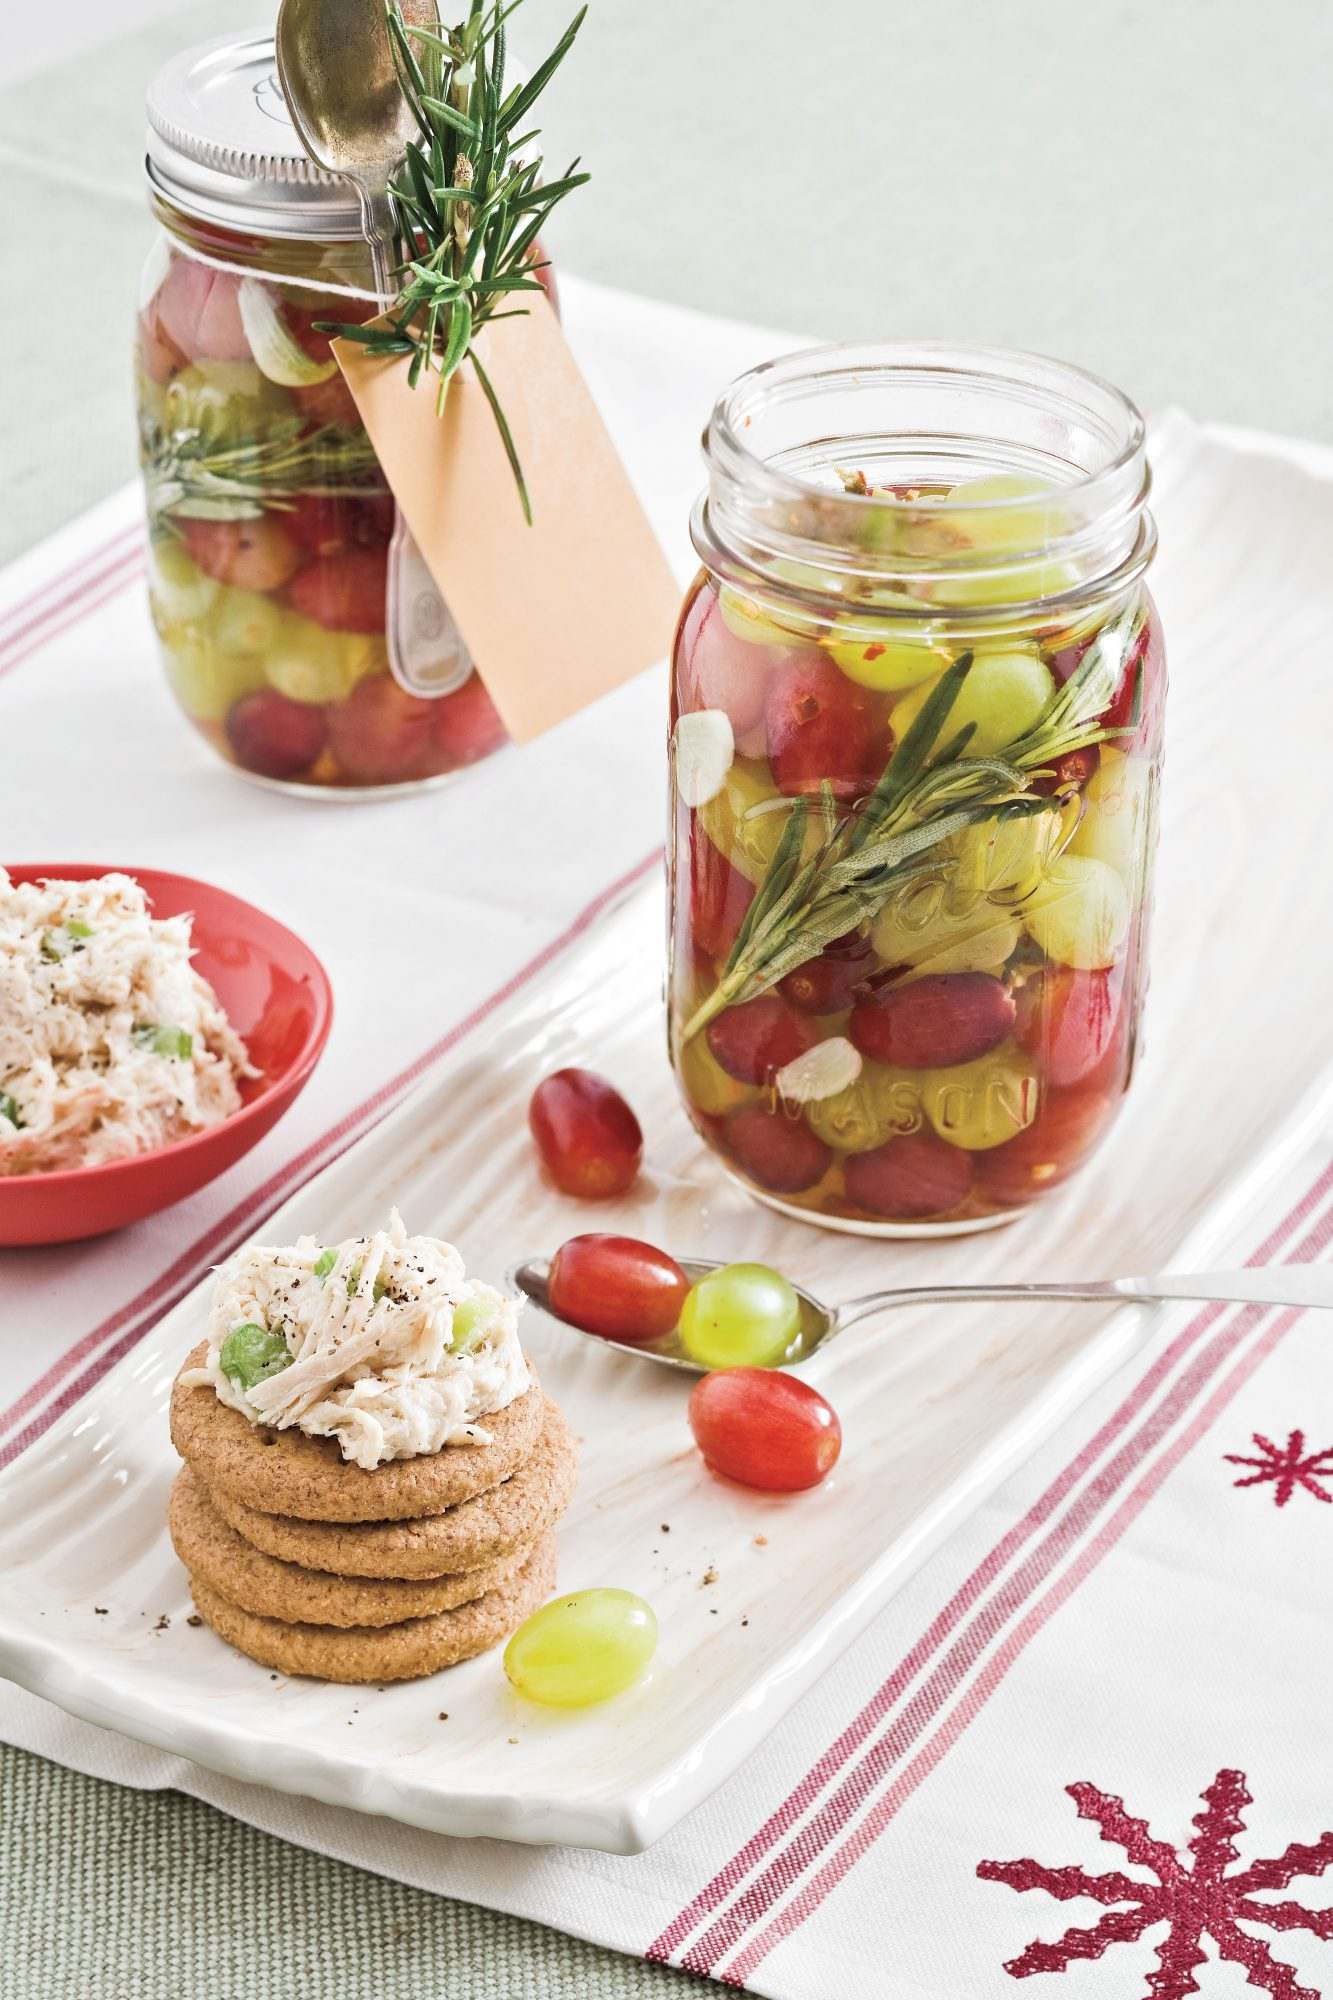 Pickled Grapes With Rosemary and Chiles